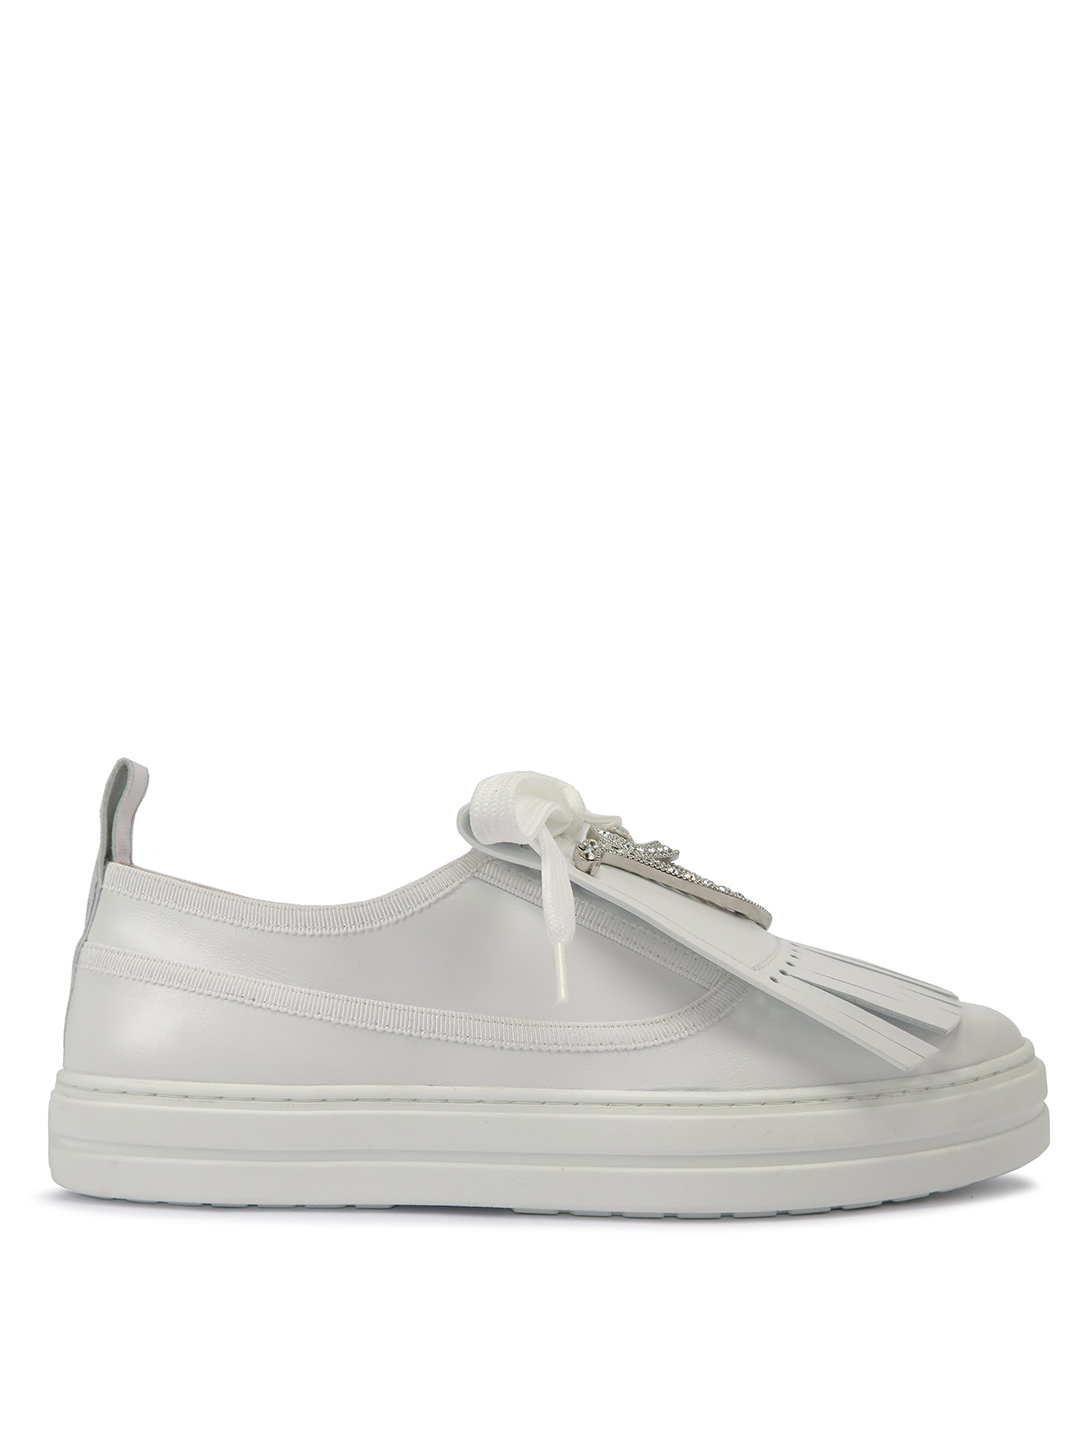 ROGER VIVIER Call Me RV Strass Leather Sneakers Women's White